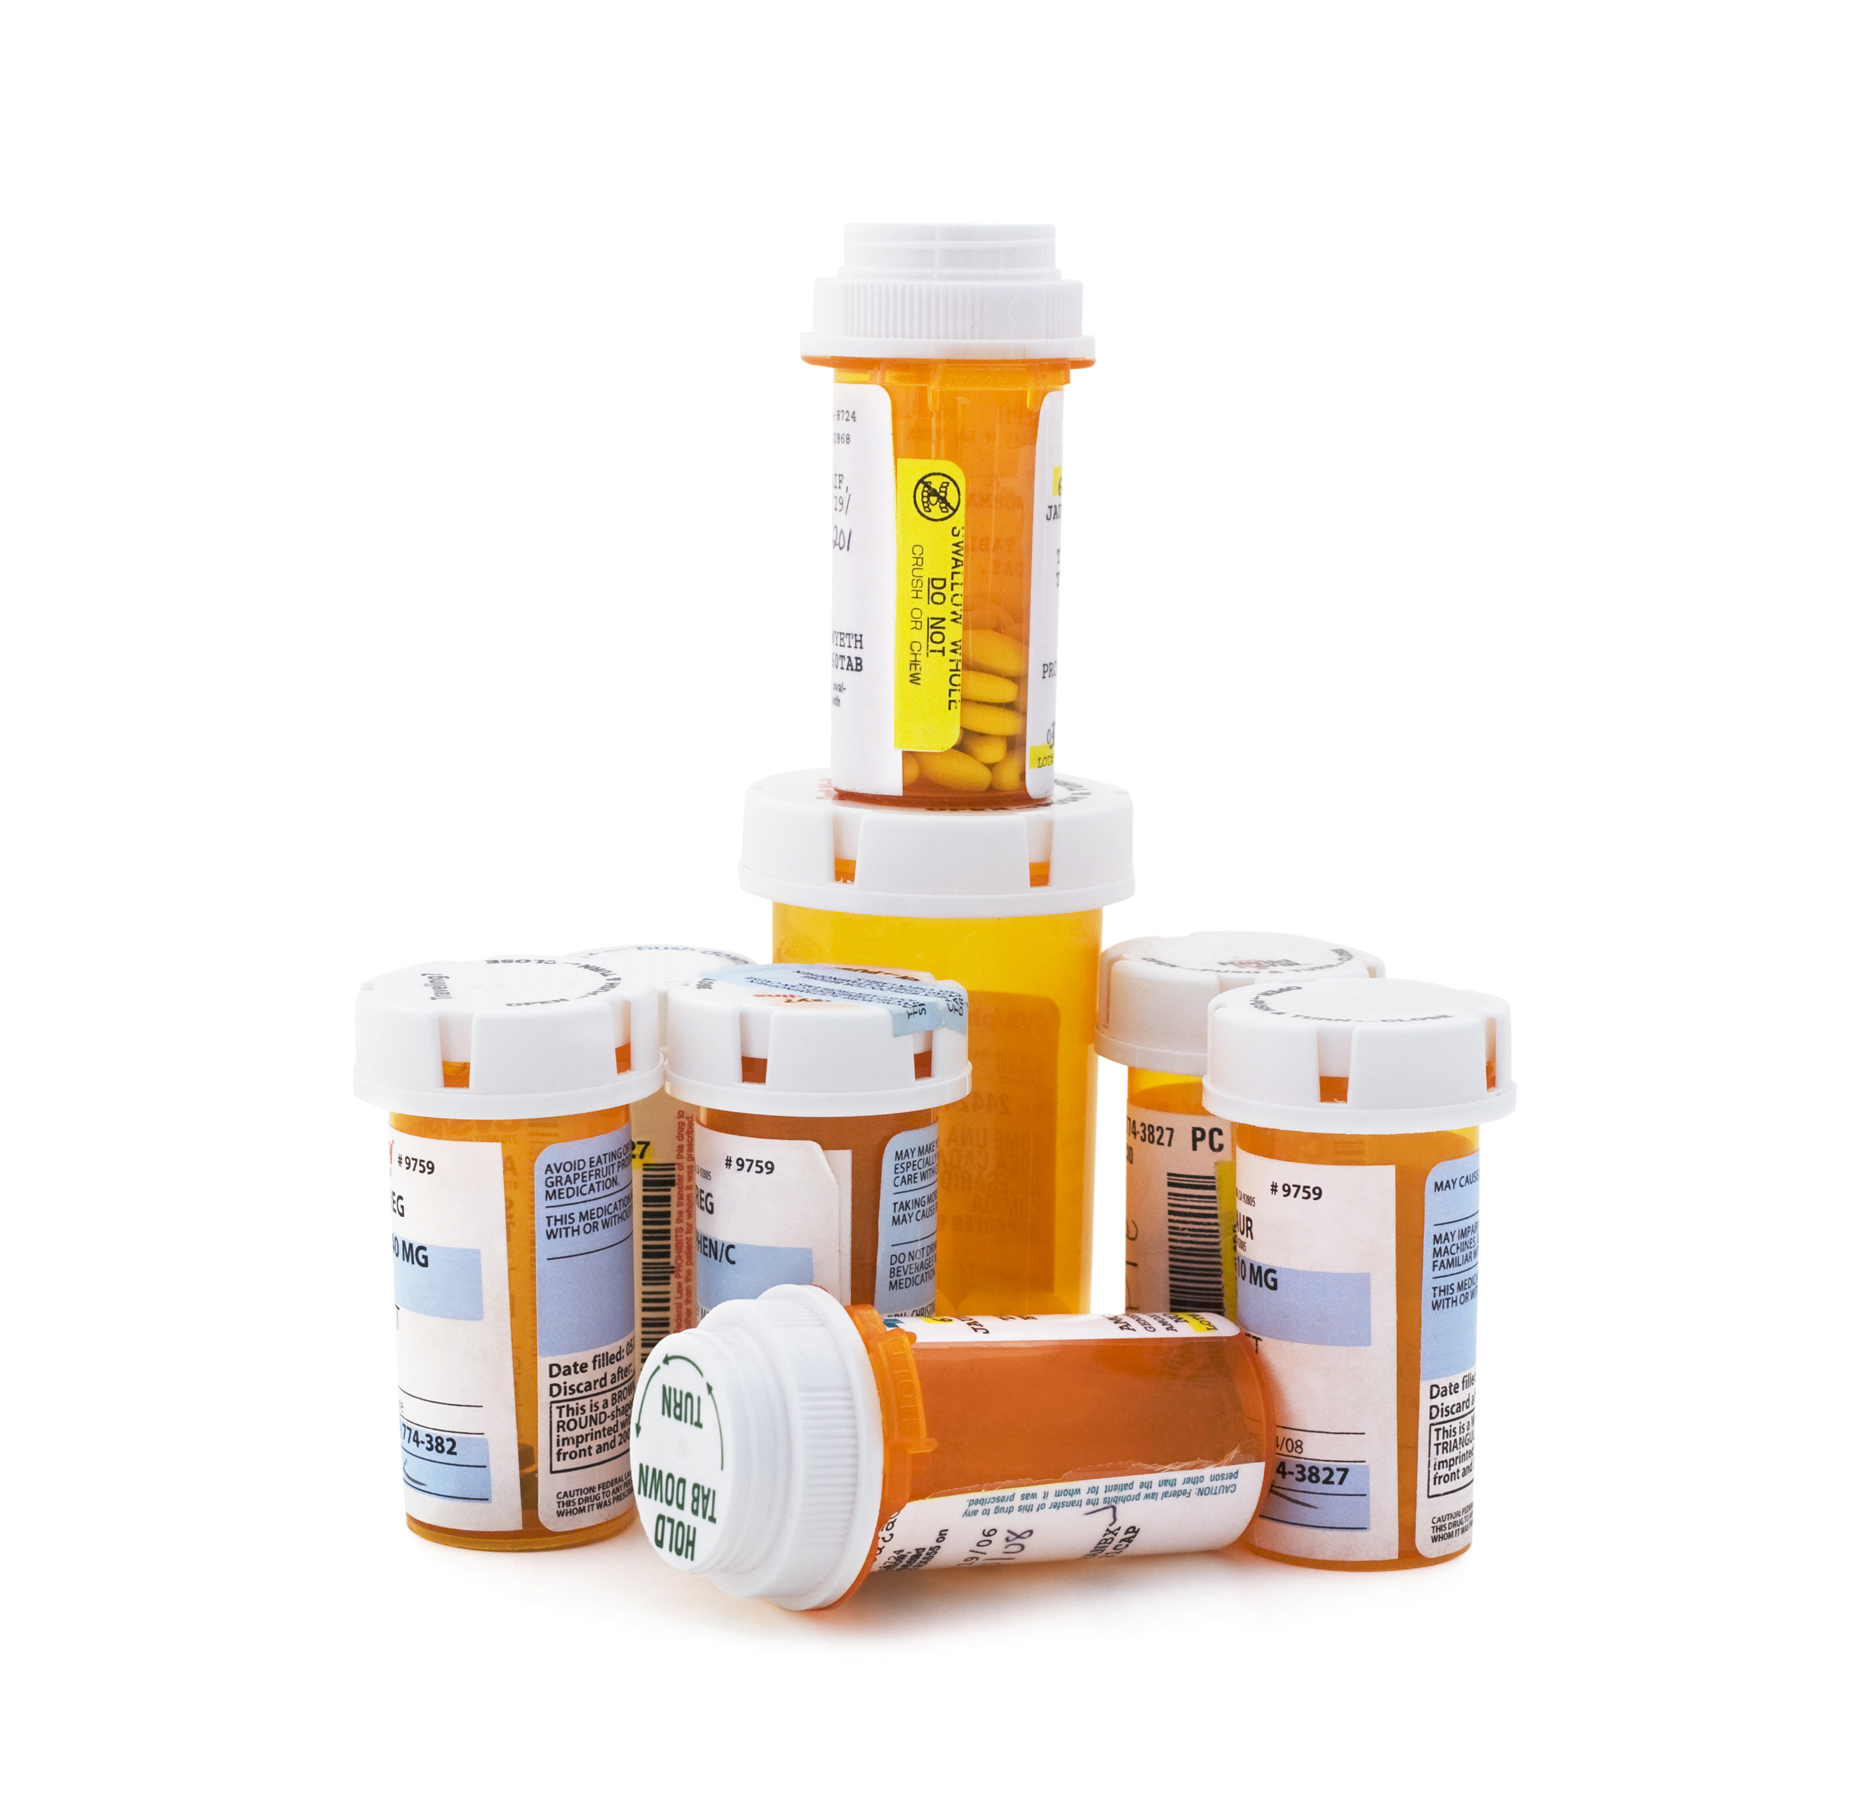 Nursing Precautions For C Diff Pill Bottles